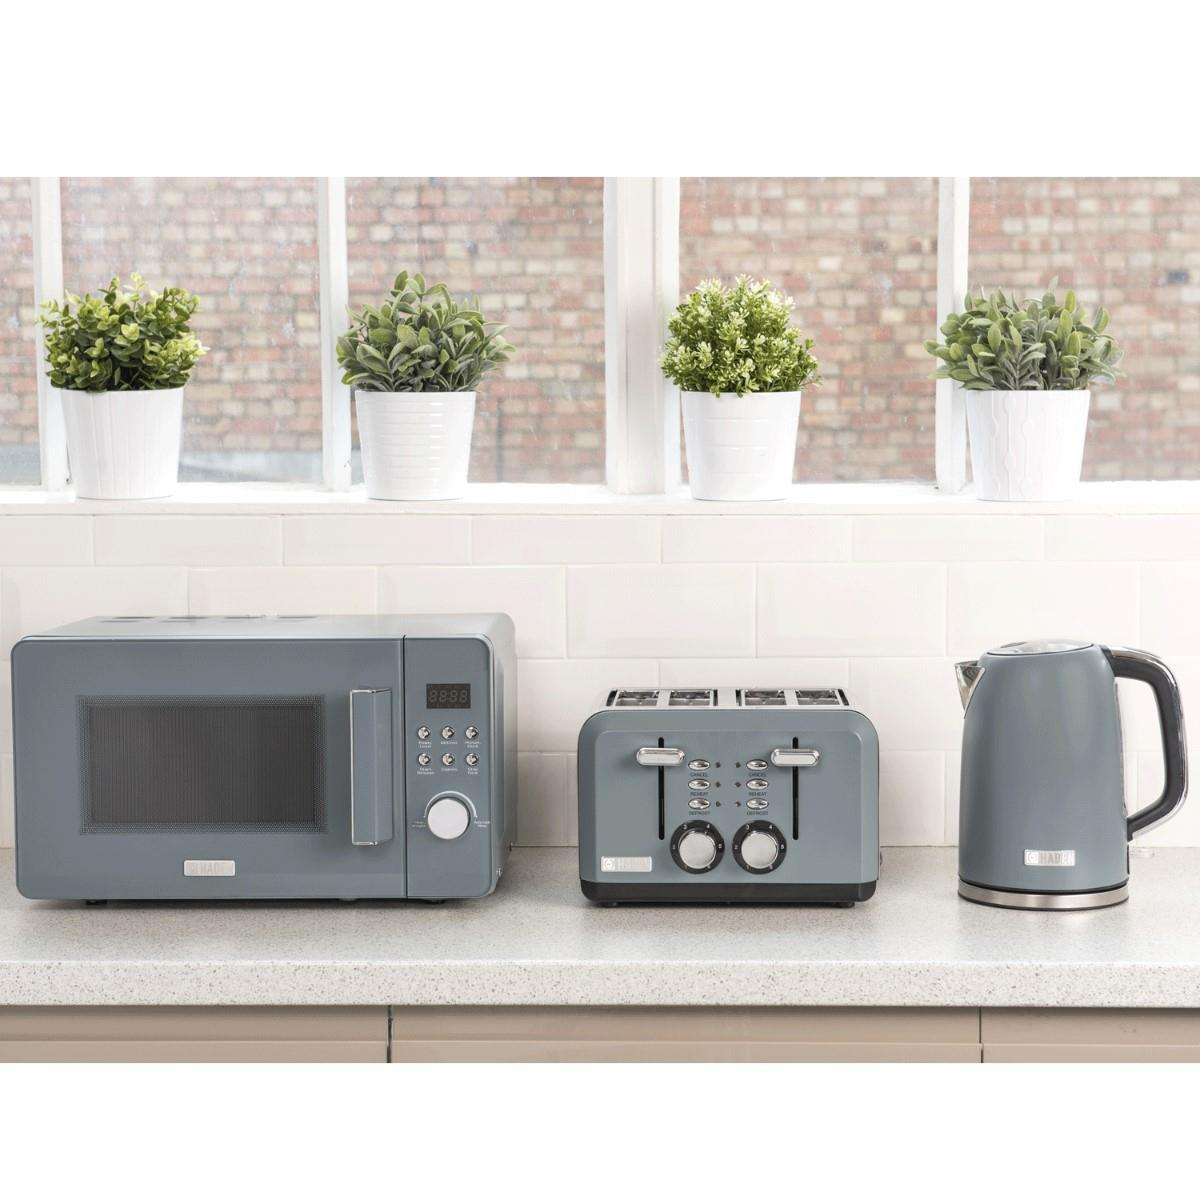 Perth Slate Grey 4 Slice Toaster | Toaster, Slate grey, Four